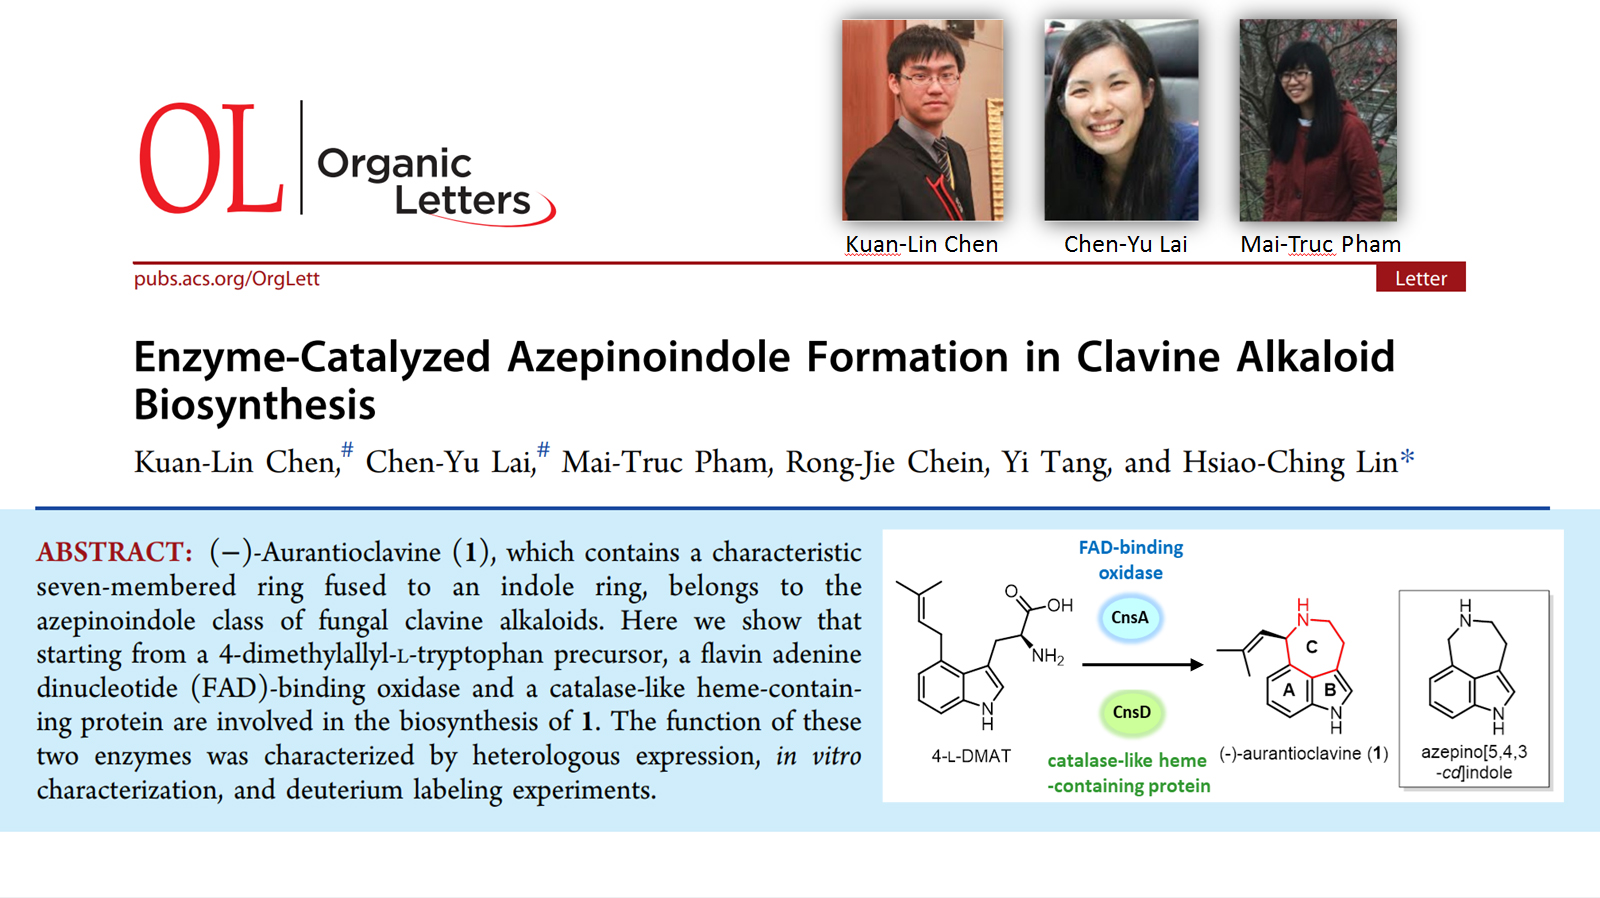 Enzyme-Catalyzed Azepinoindole Formation in Clavine Alkaloid Biosynthesis